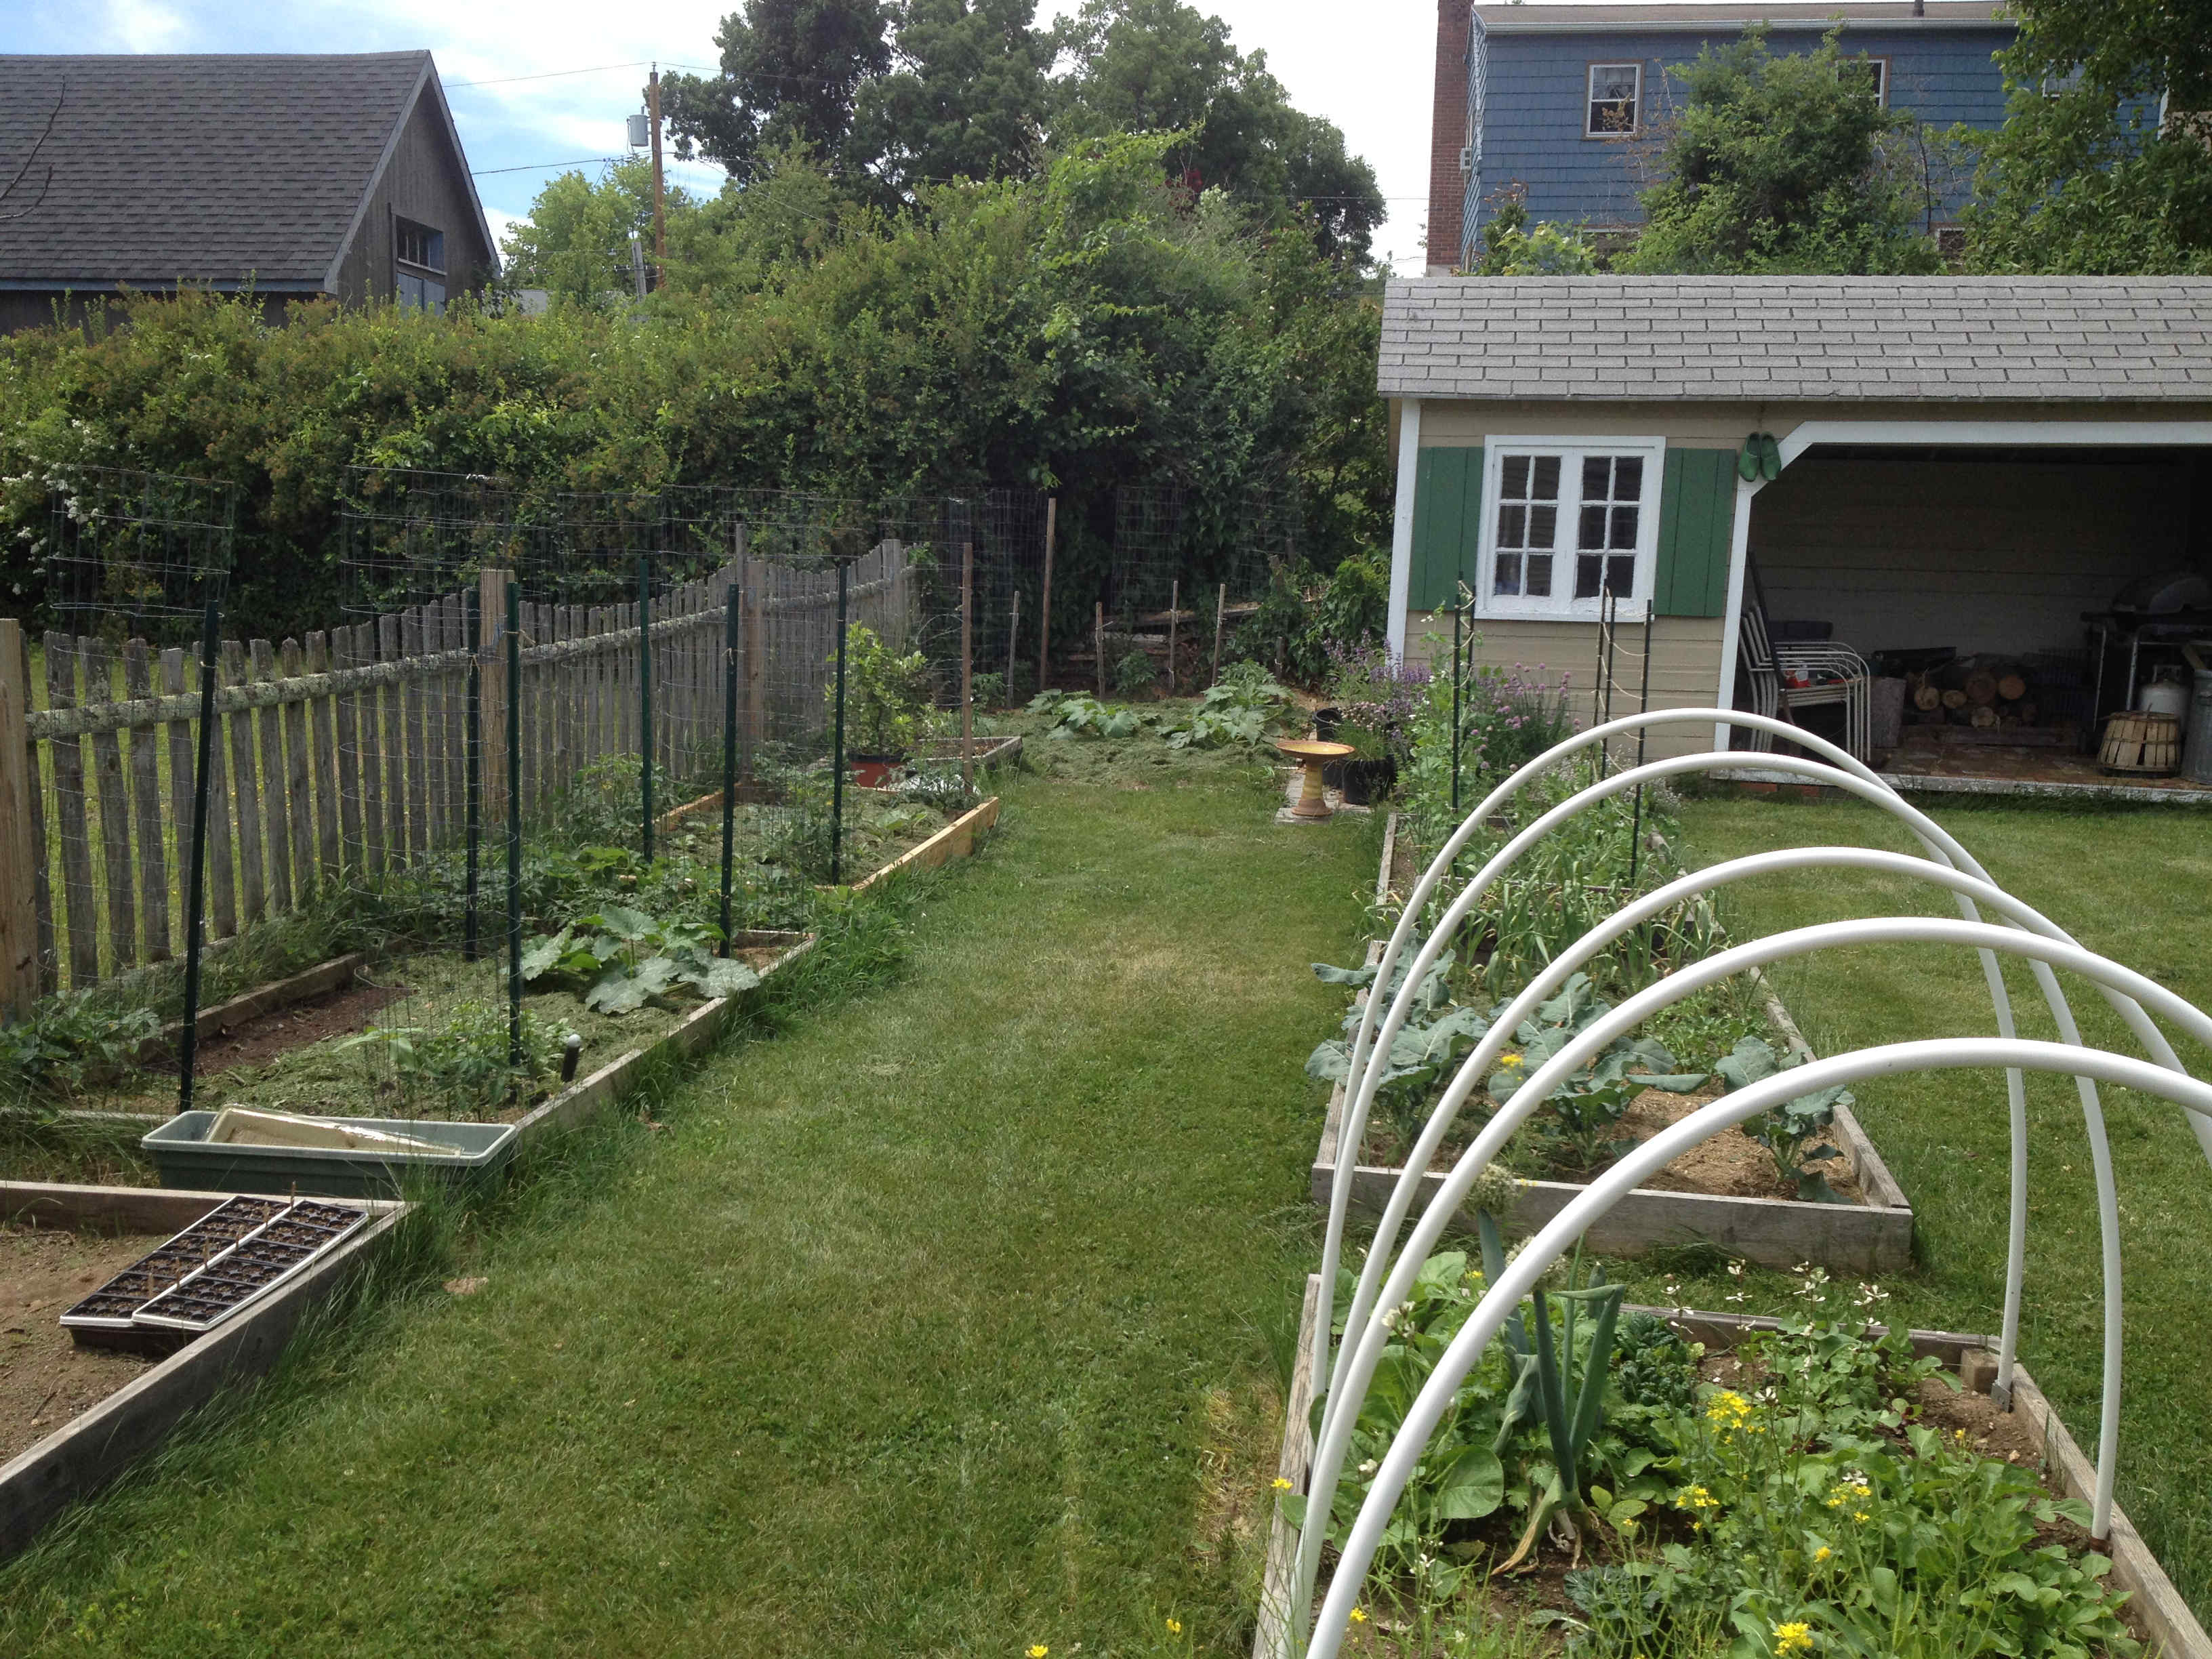 Cool The Vegetable Garden Ideas - Landscaping Ideas for Backyard ...